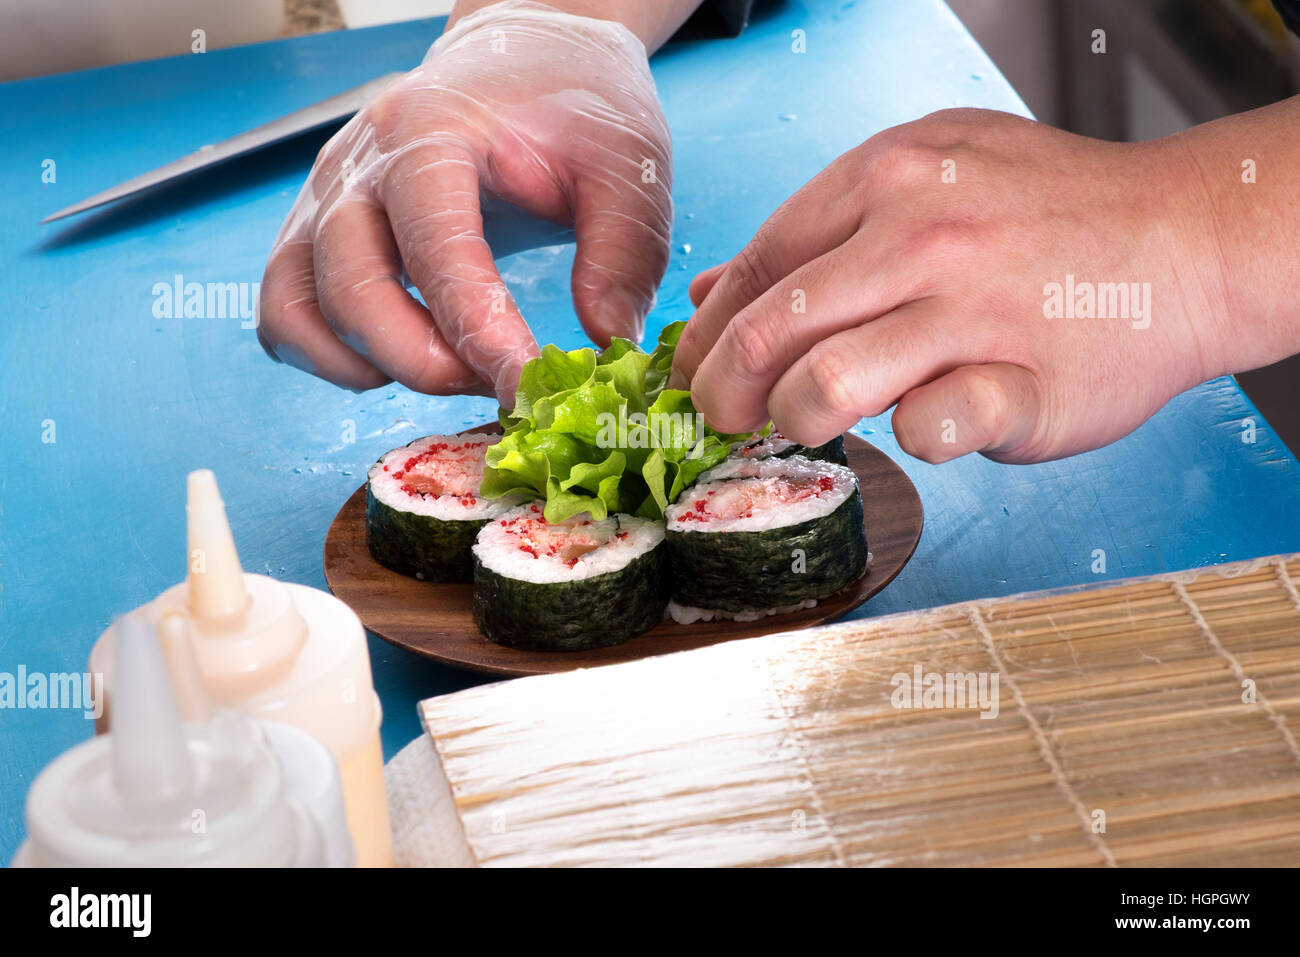 Close up view of chefs hands carefully placing Futomaki rolls on wooden plate - Stock Image